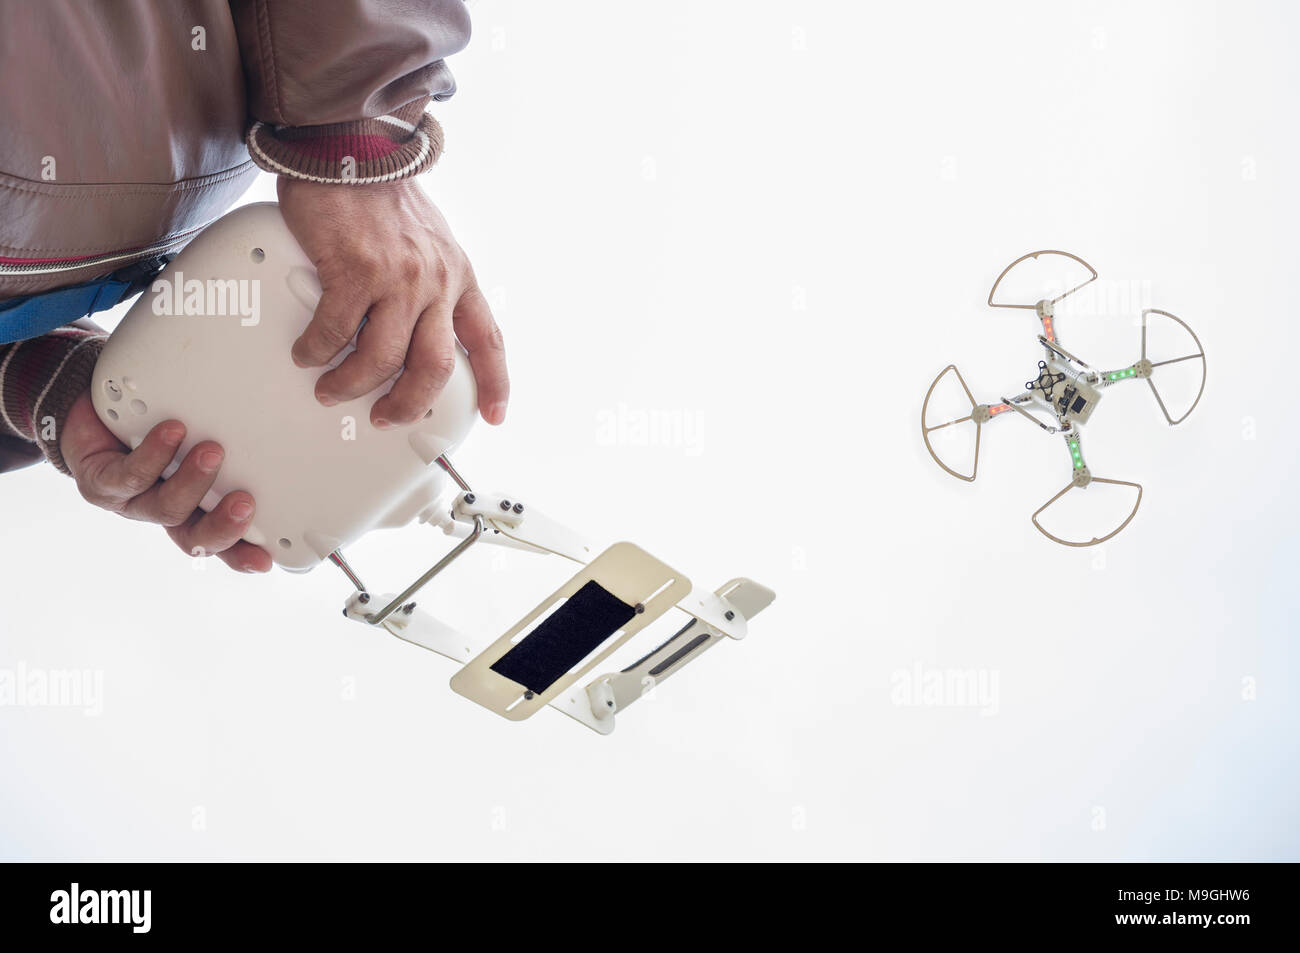 Pilot flying drone with FPV mount empty on remote controller. Approaching maneuver - Stock Image